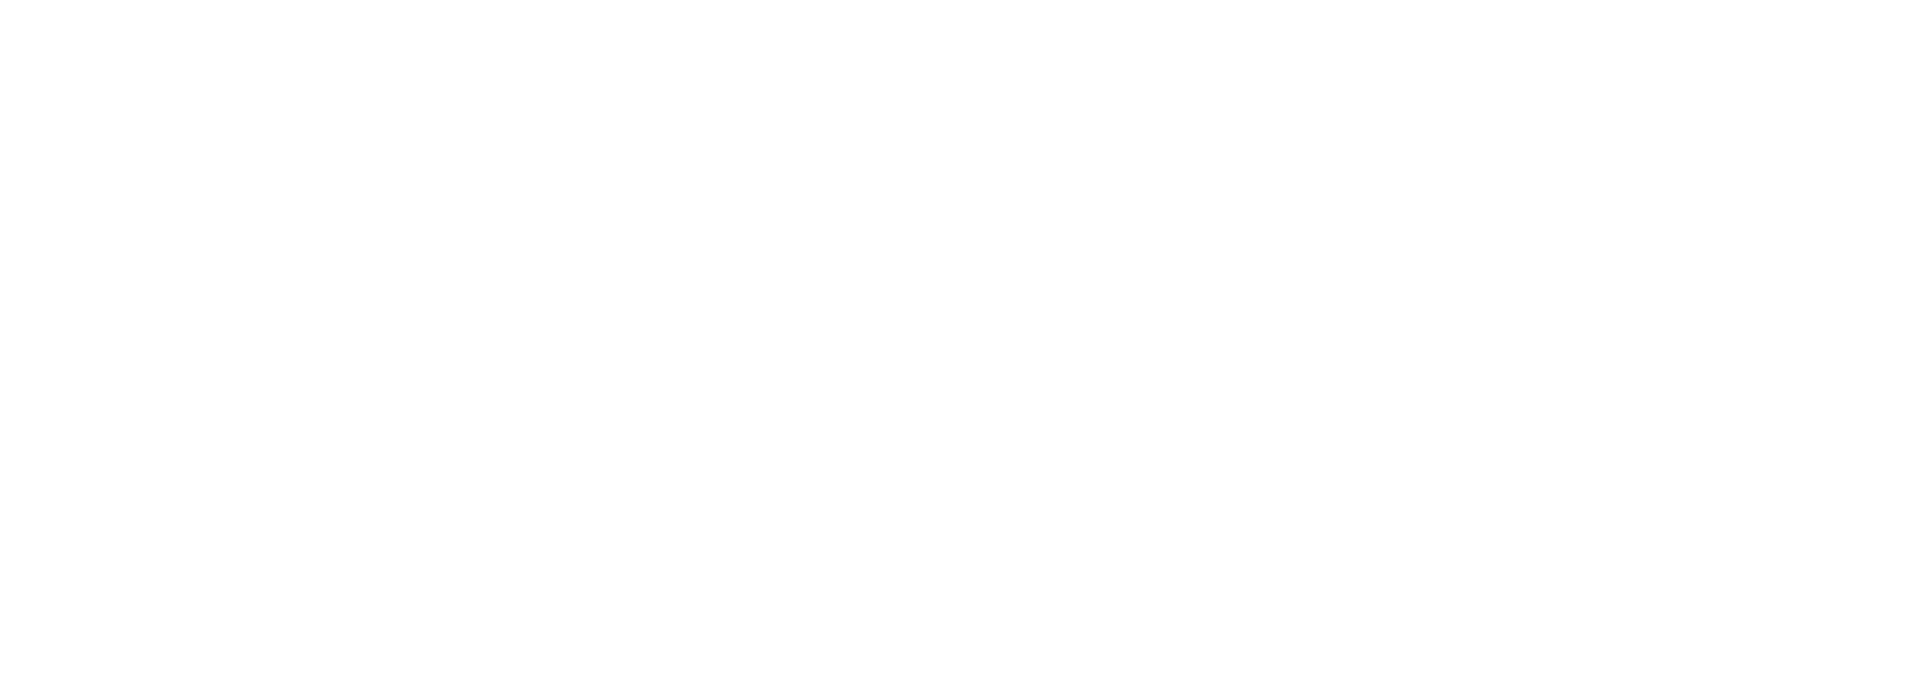 The bottom line: the demand exceeds the supply